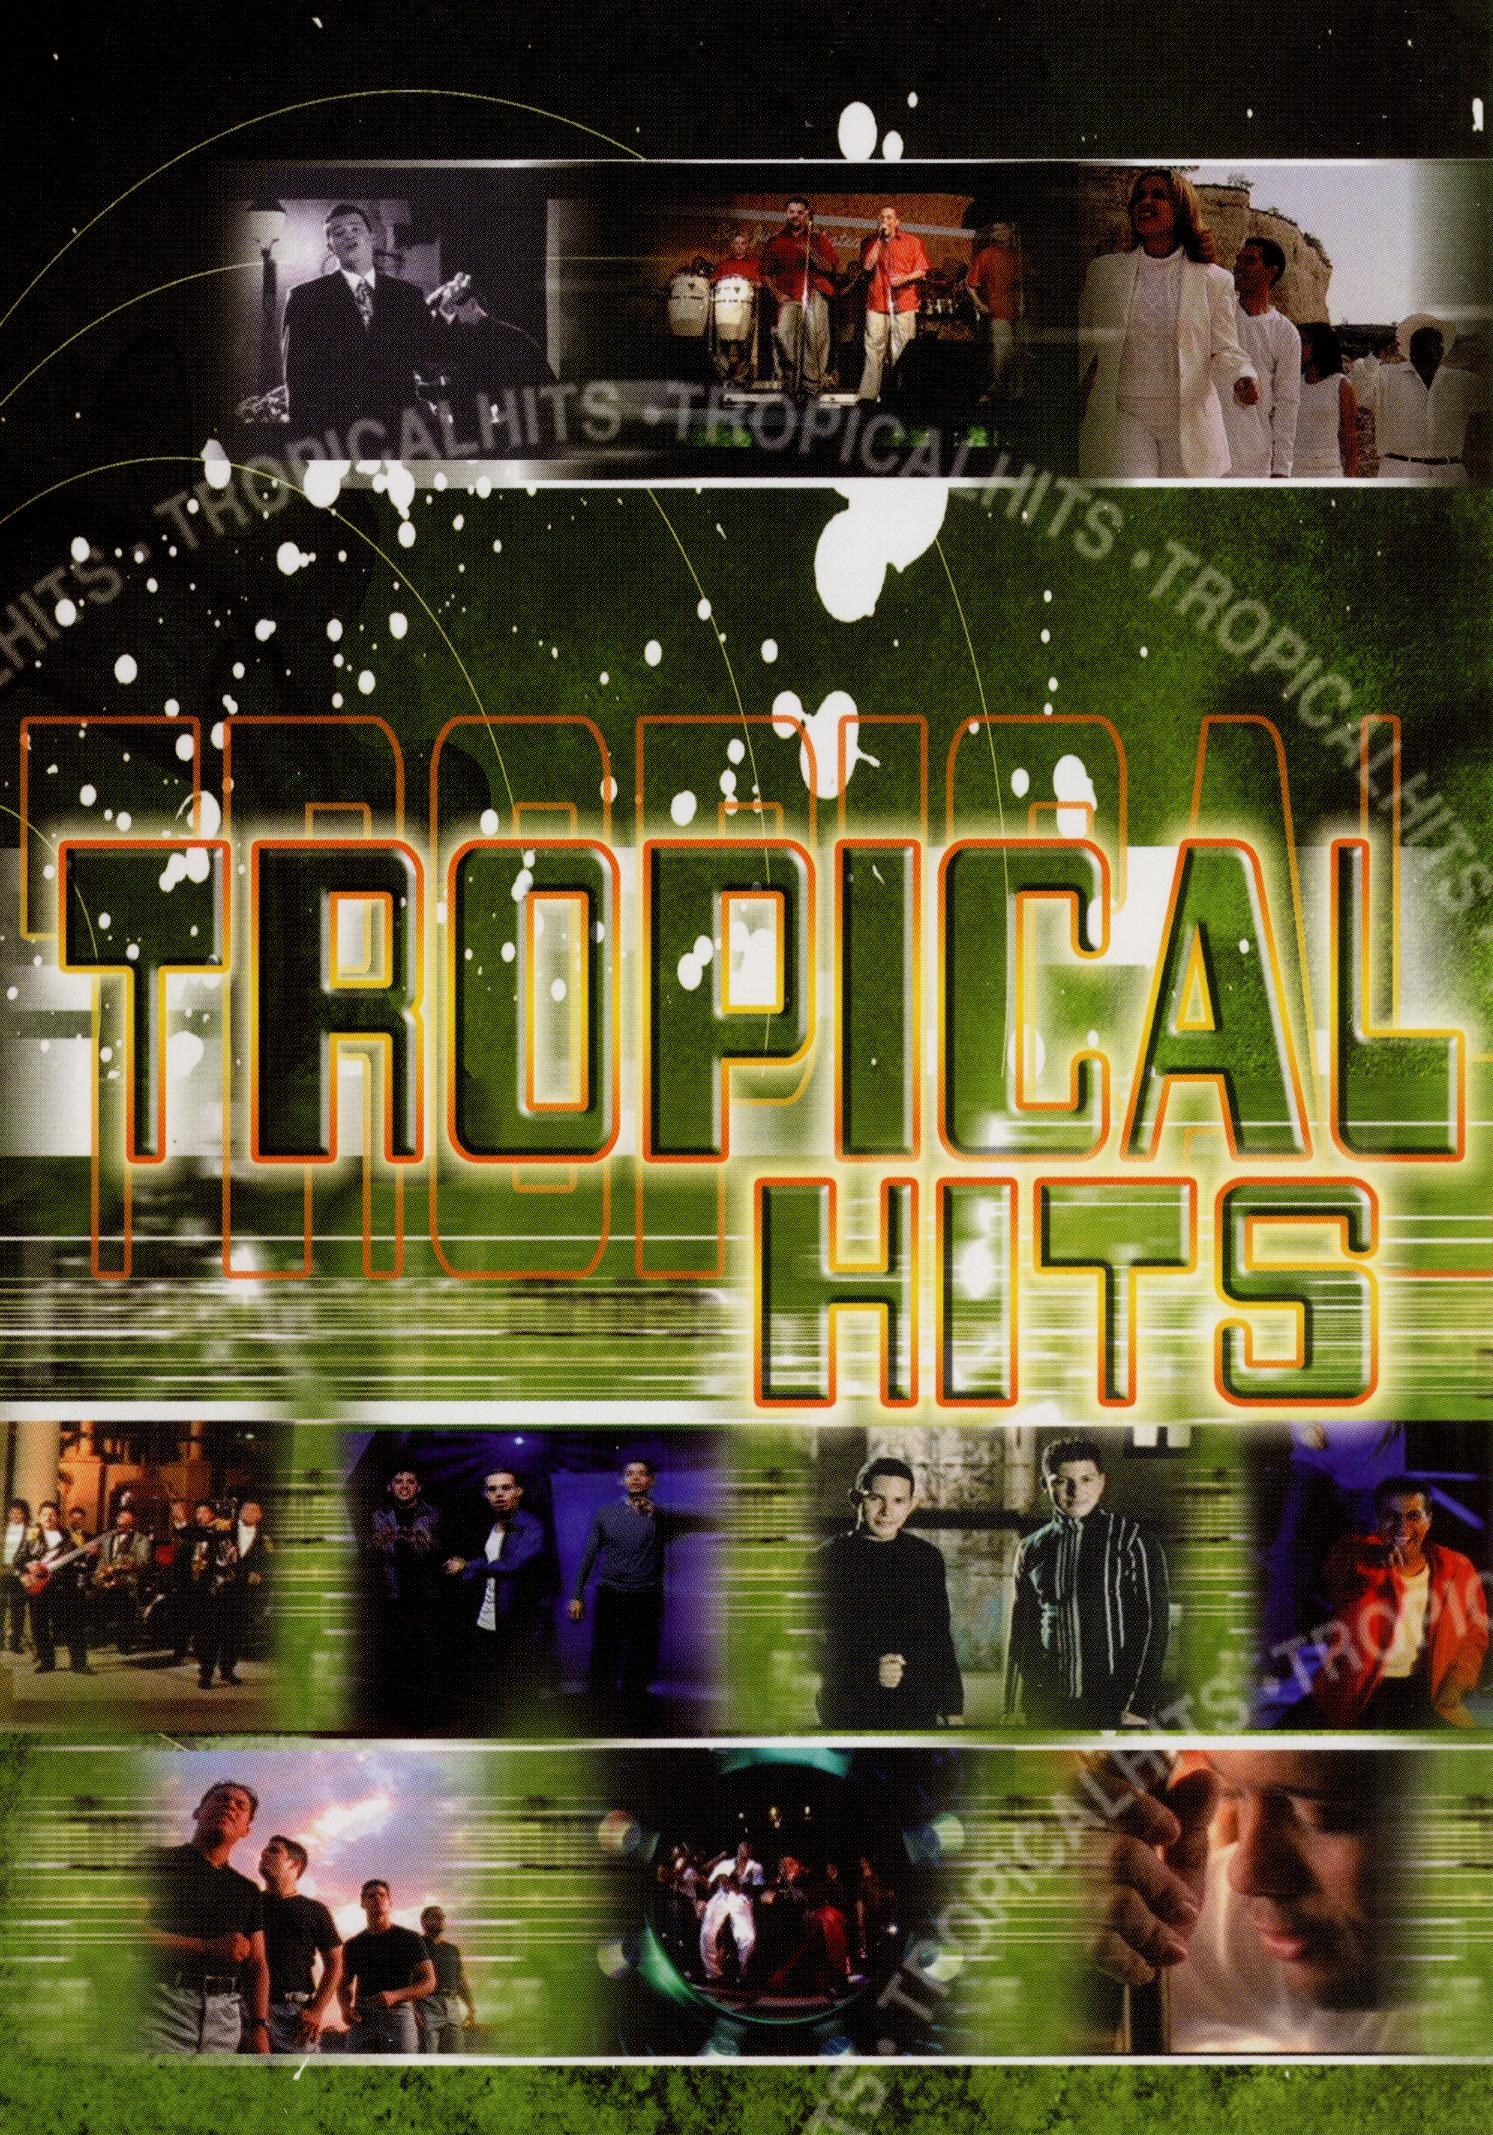 Tropical Hits